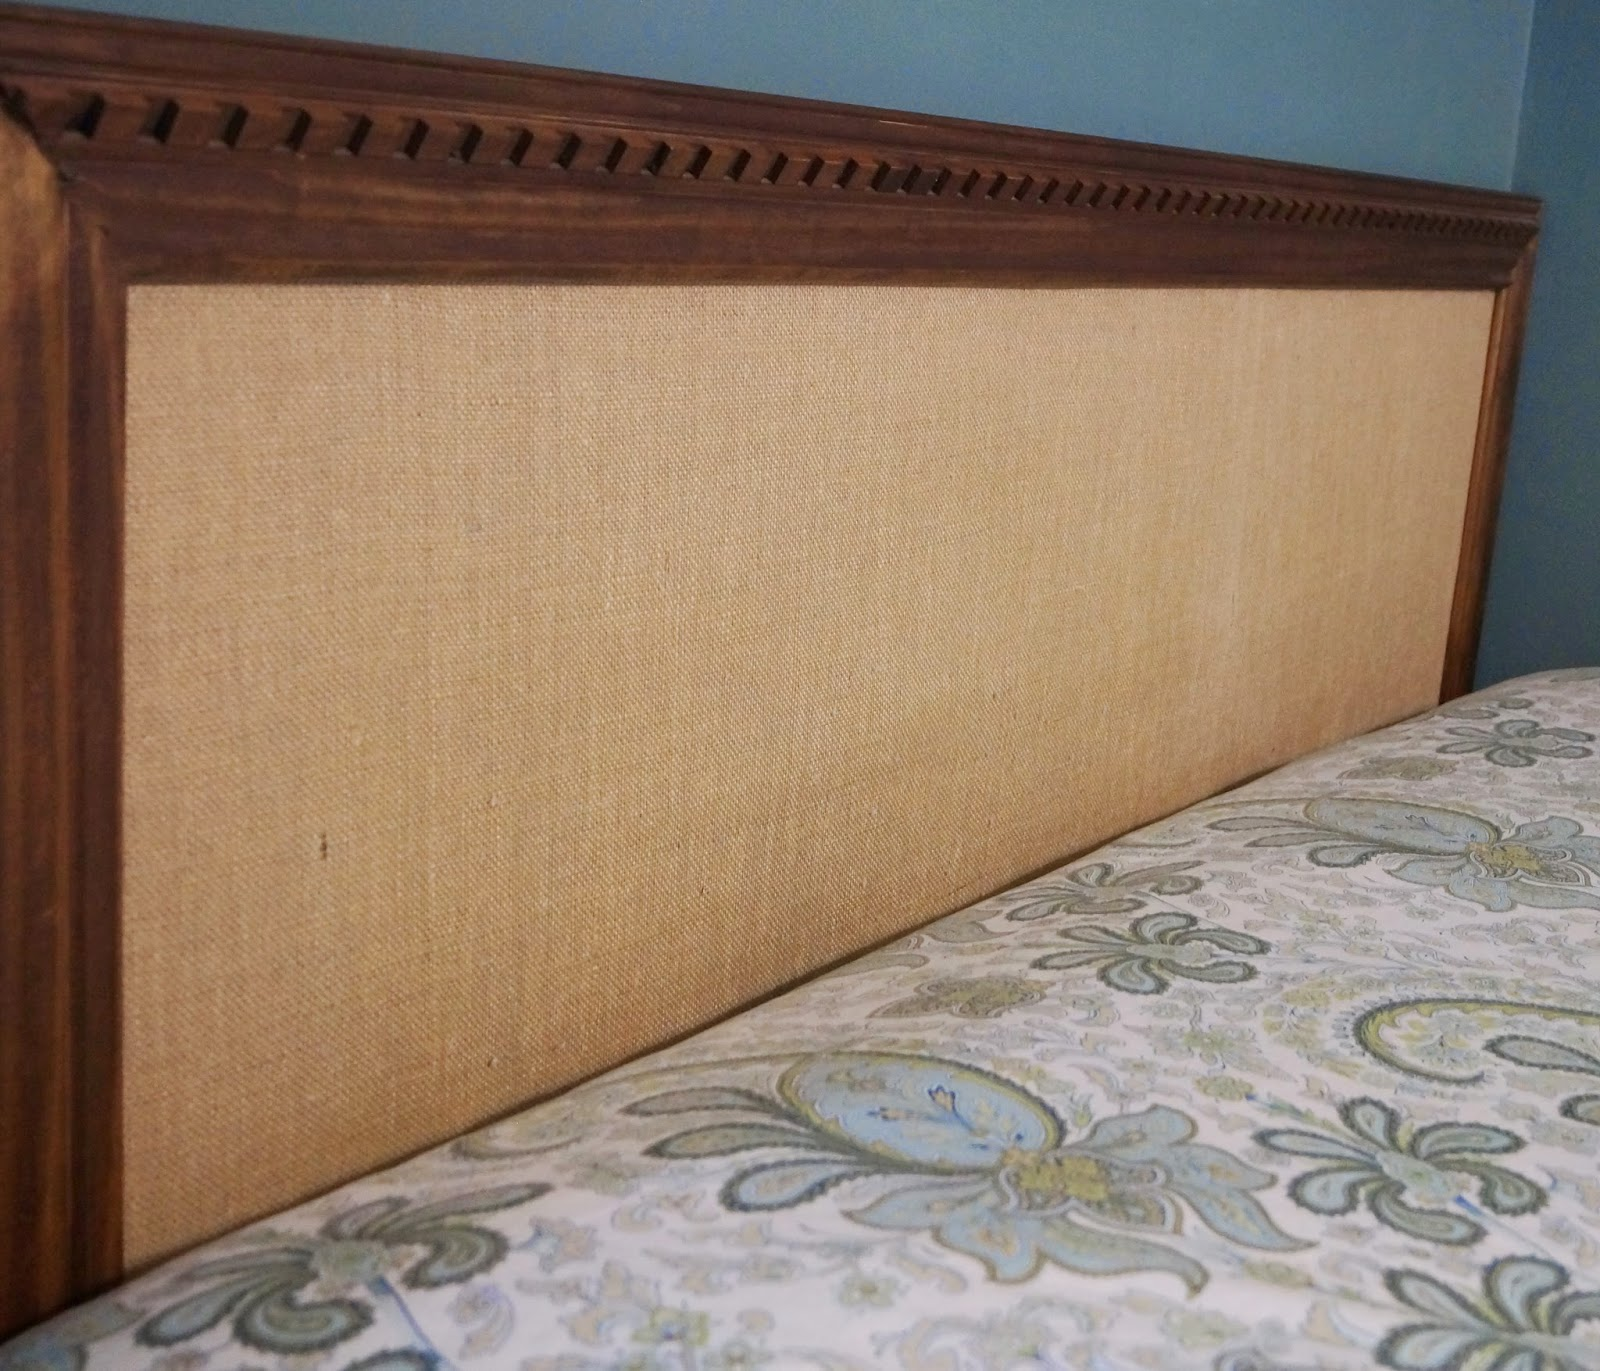 Remodelaholic 2 hour easy headboard no tools required for Simple headboard